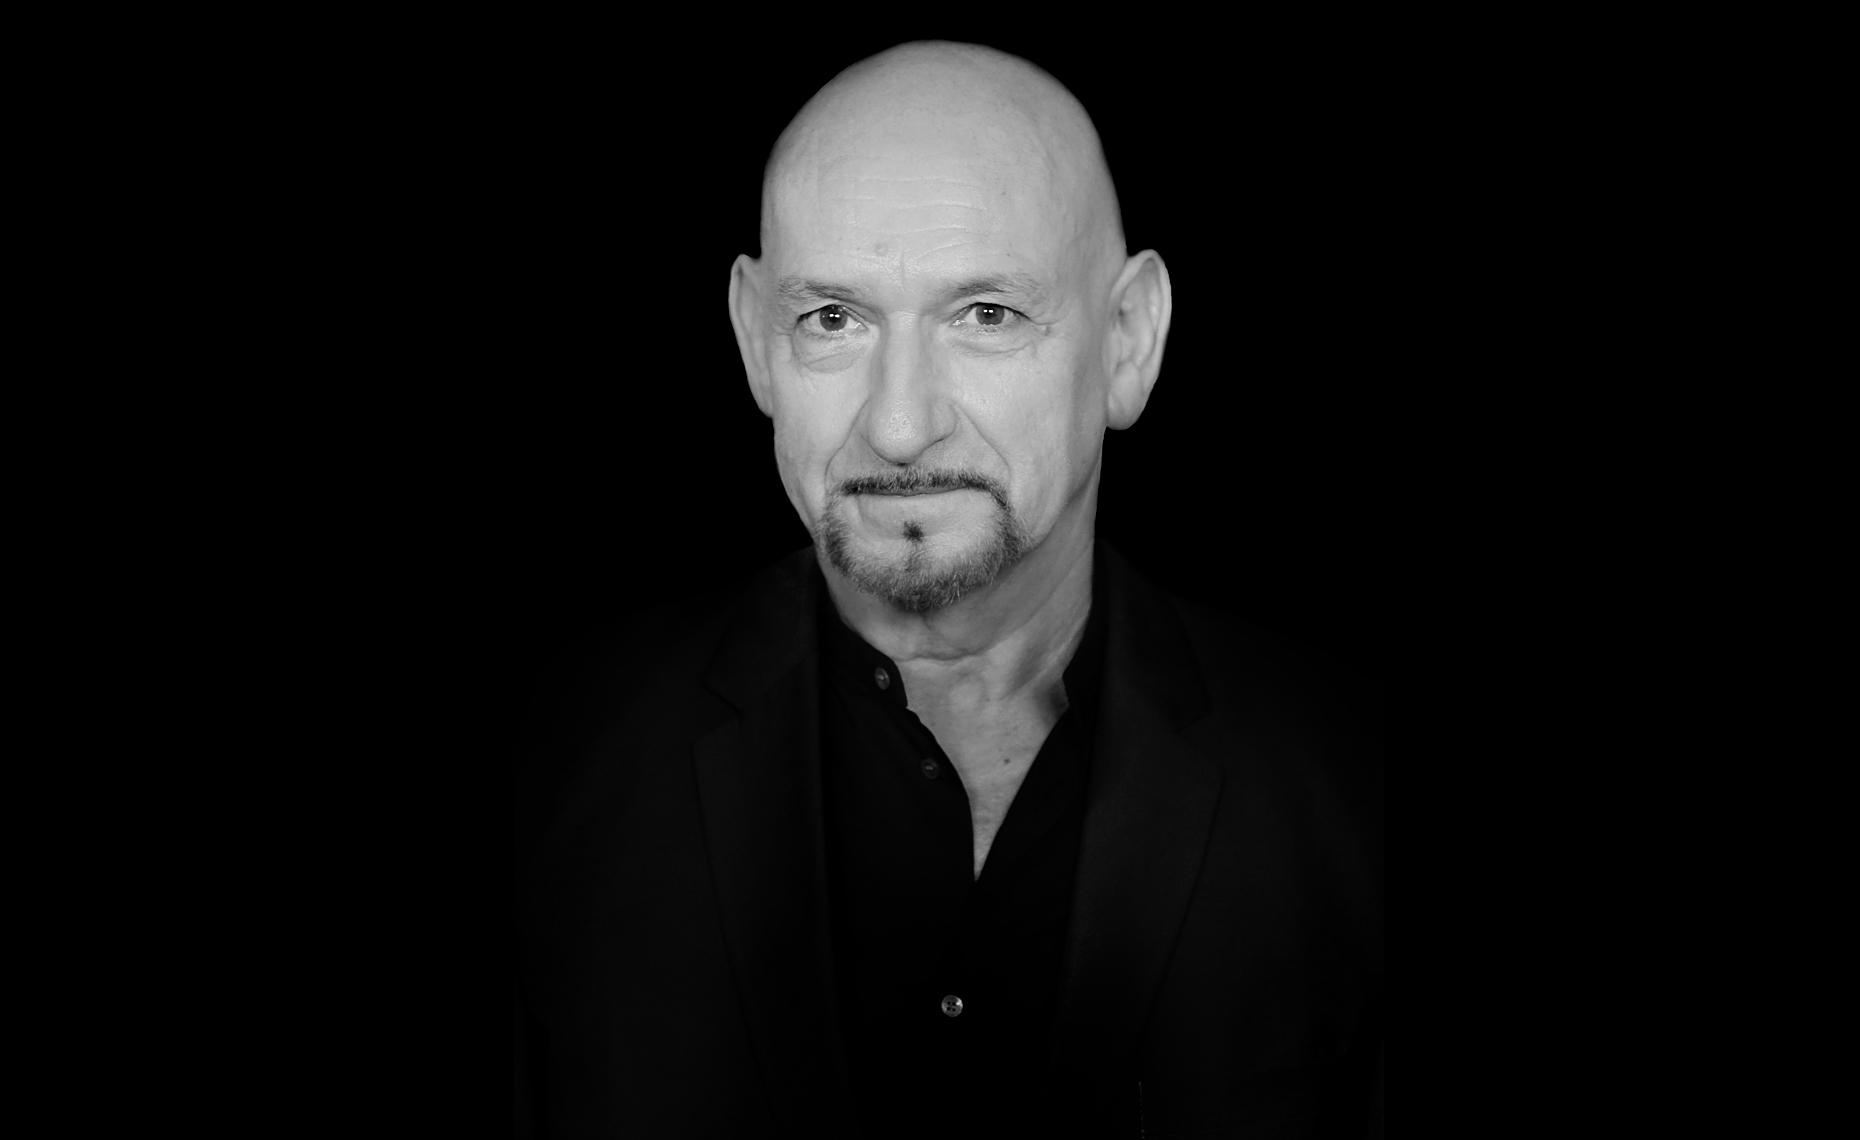 Sir Ben Kingsley